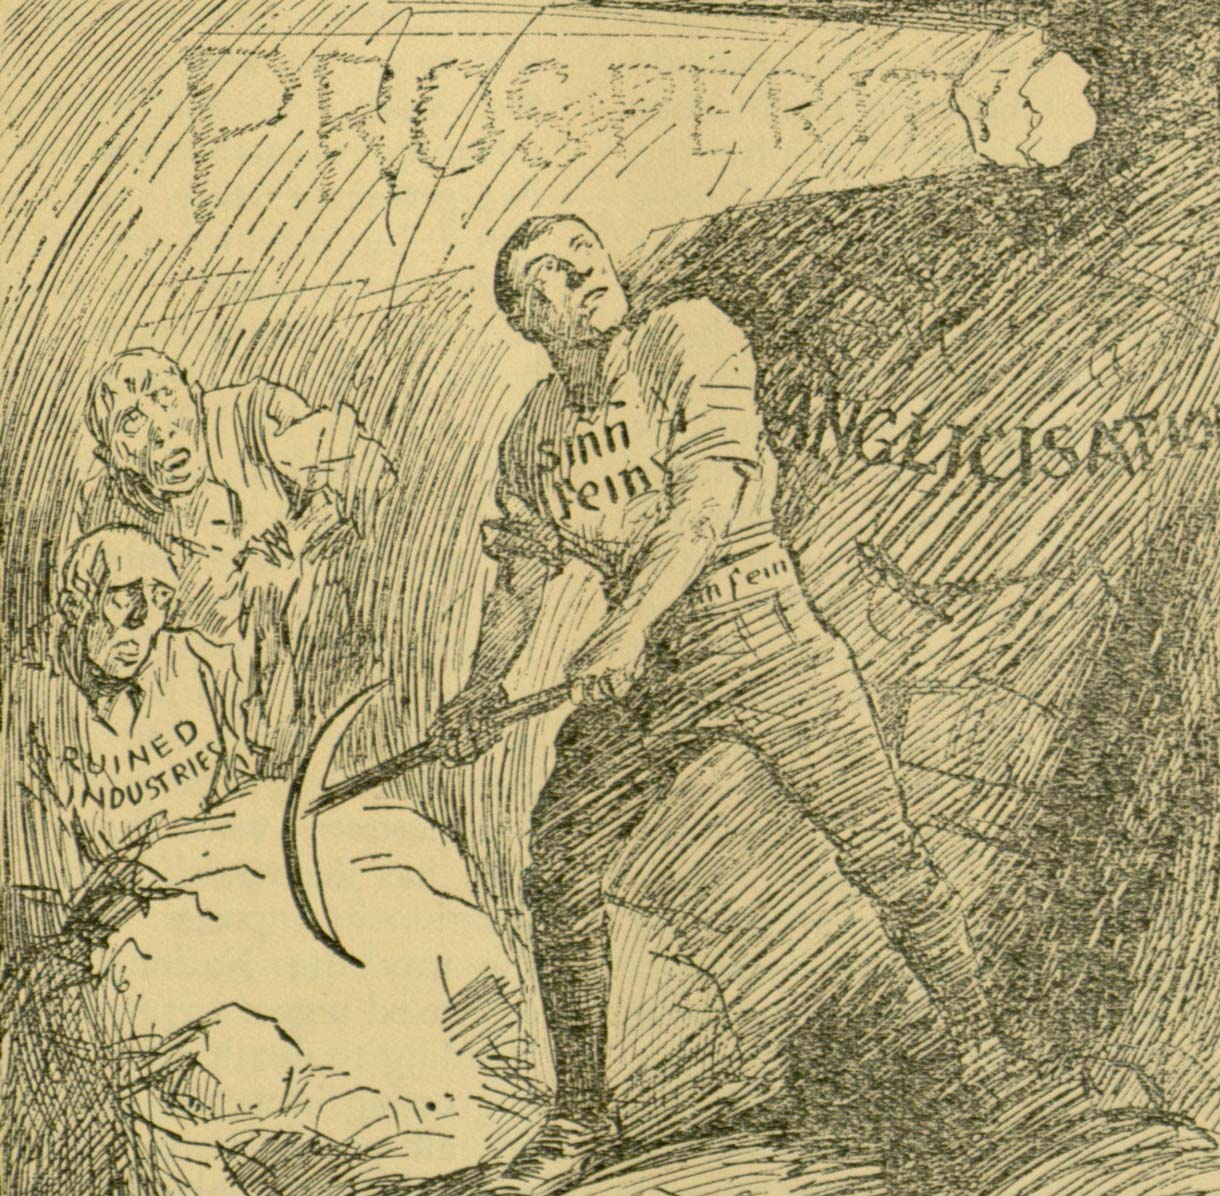 Sinn Féin cartoon from 'The Republic', 24 January 1907